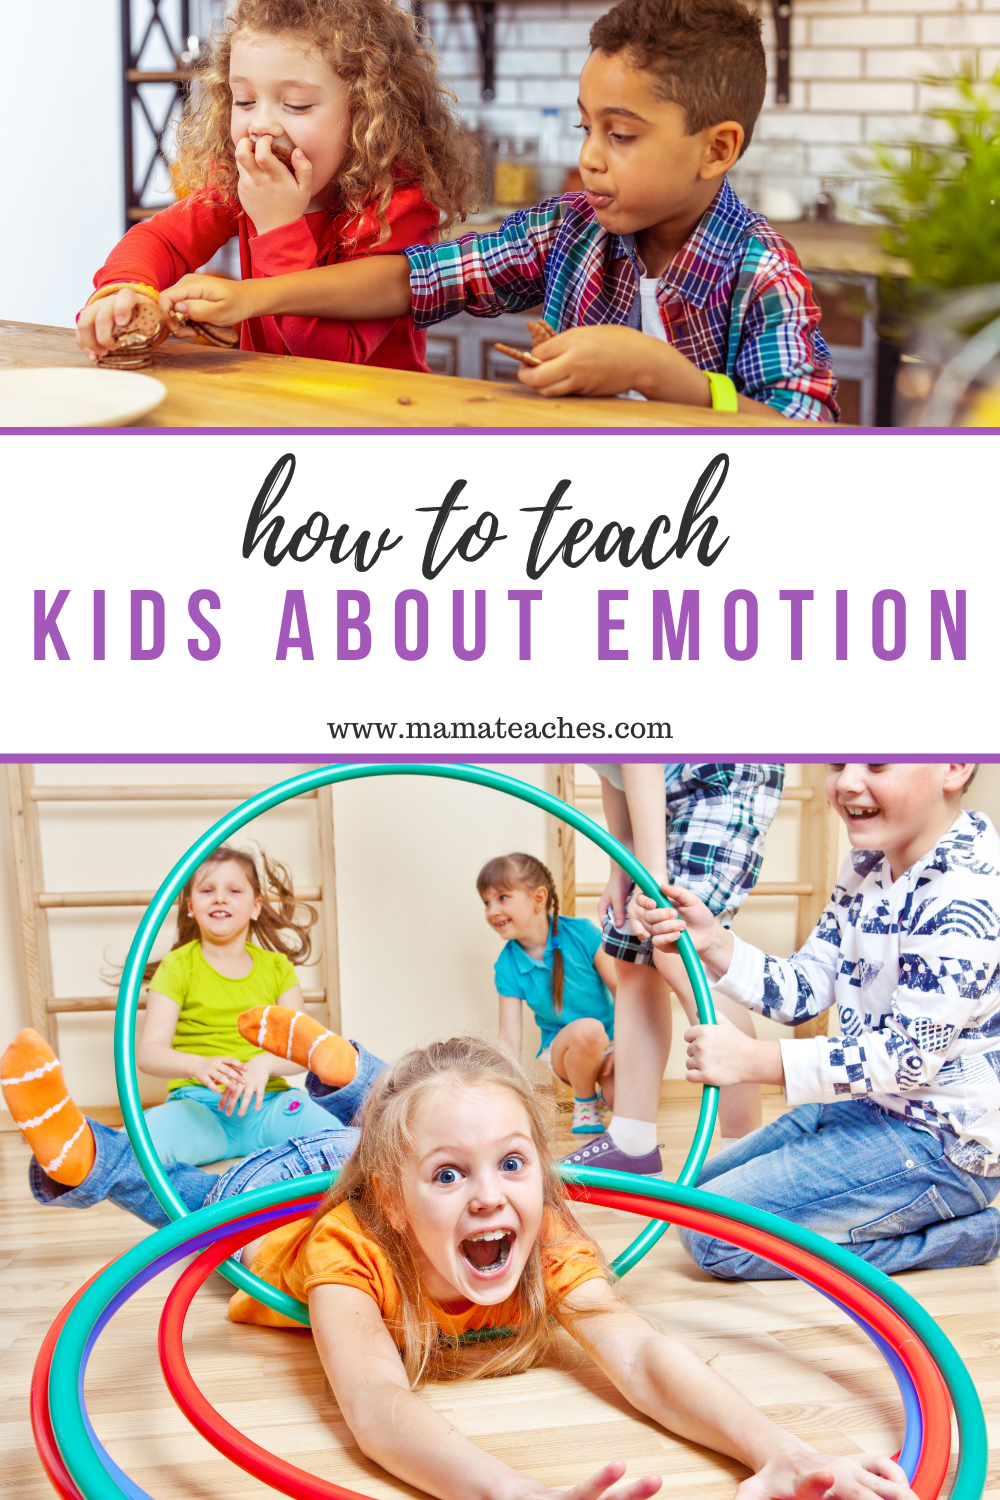 How to Teach Kids About Emotions